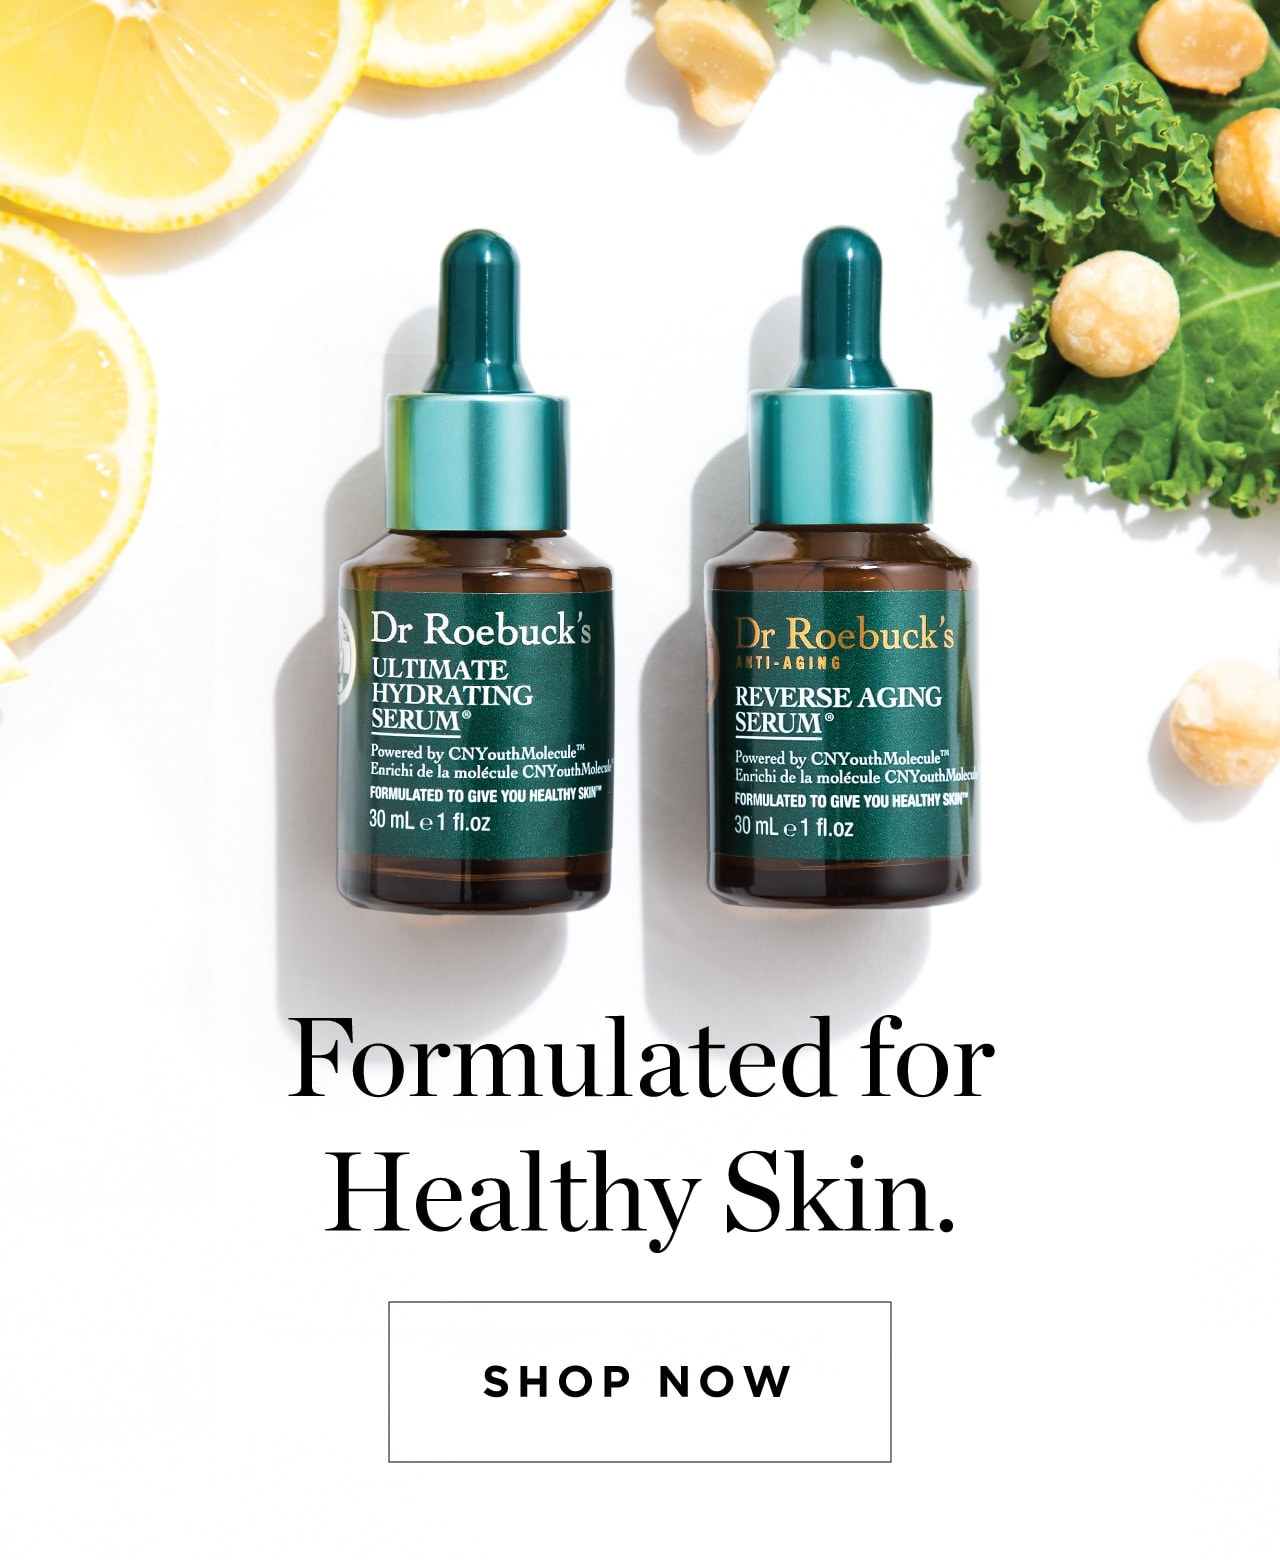 Formulated for Healthy Skin